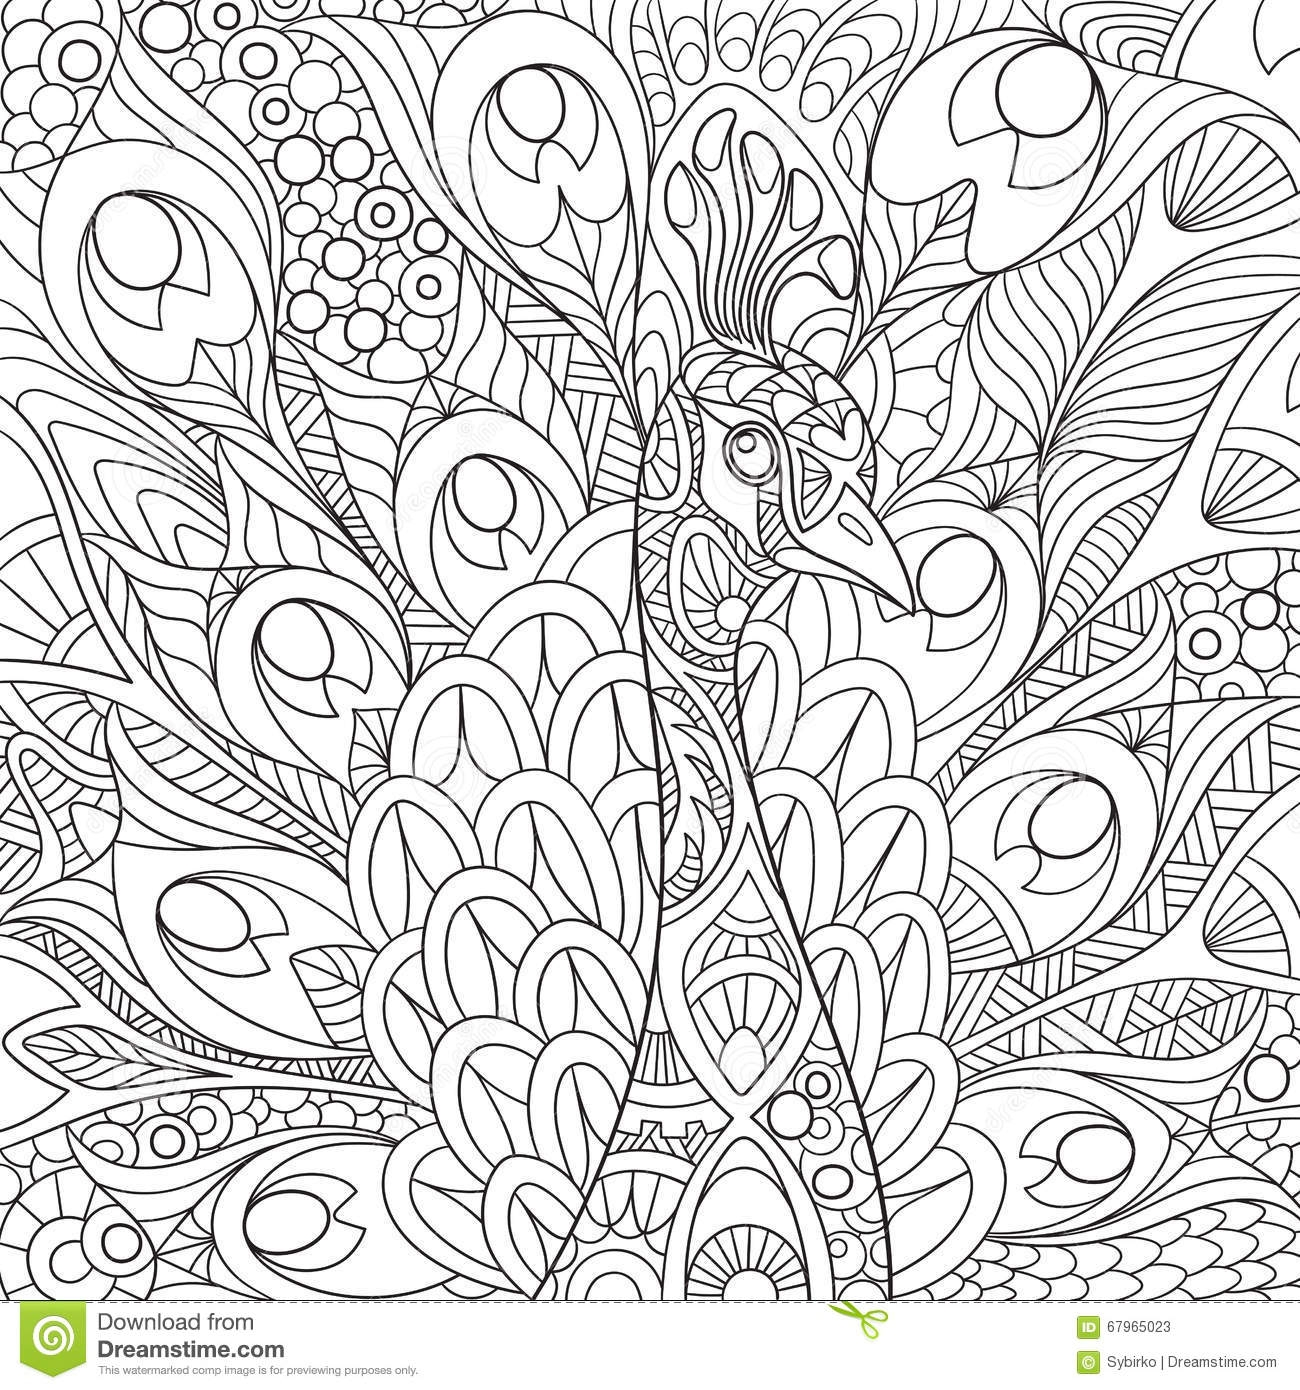 swear word coloring pages printable - stock illustration zentangle stylized peacock cartoon gorgeous feathers royal crown sketch adult antistress coloring page hand drawn image